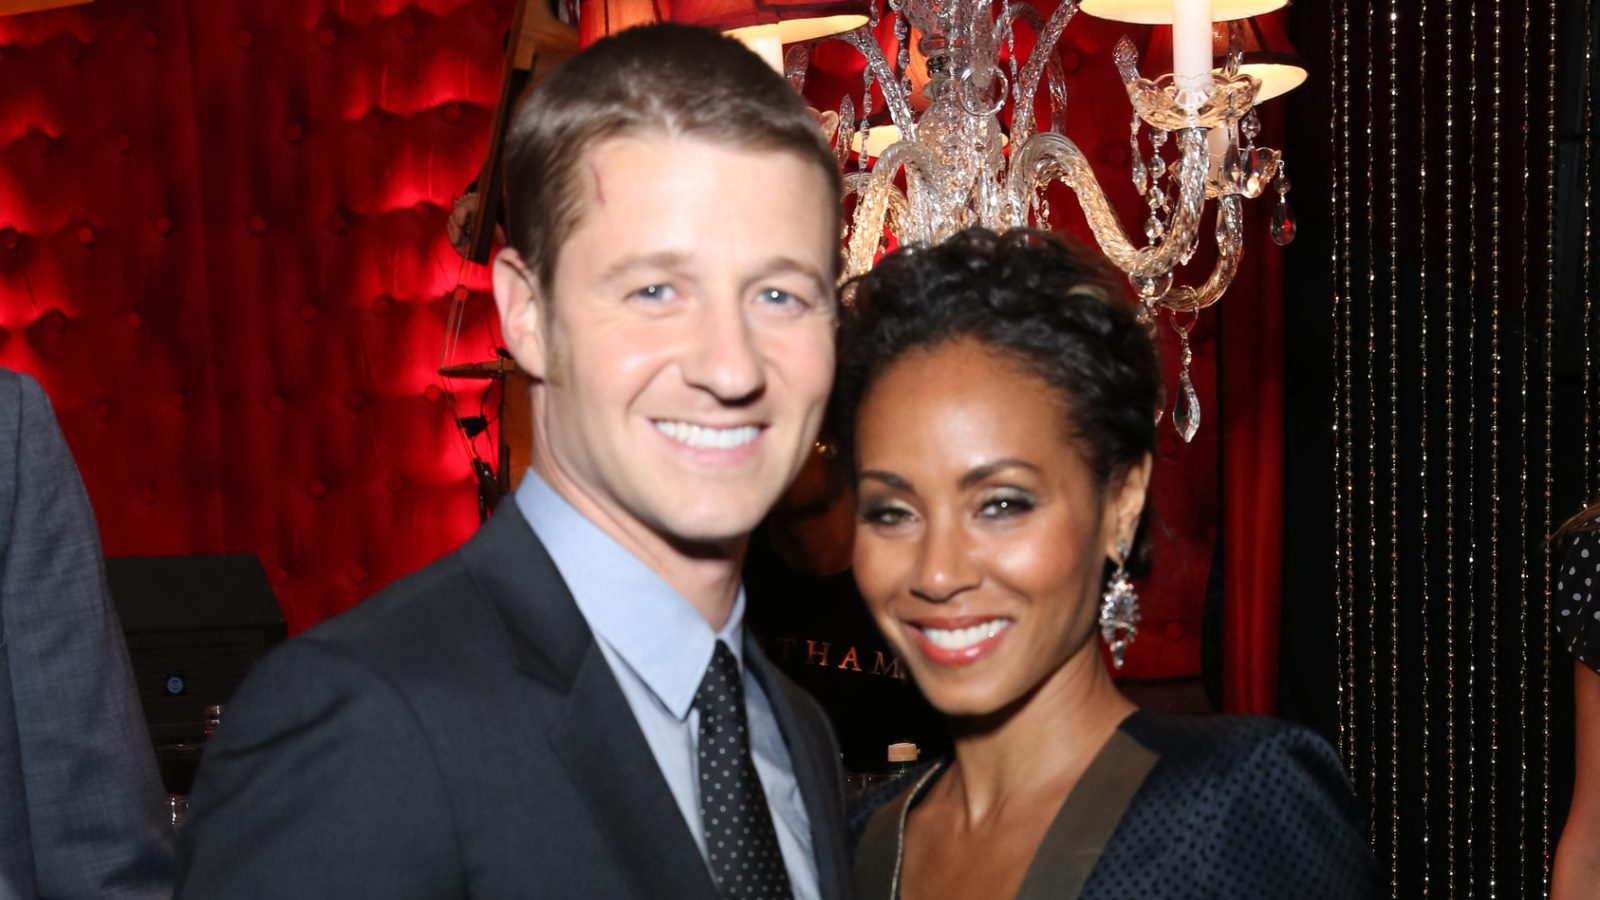 Gotham cast members Ben McKenzie and Jada Pinkett Smith celebrate during the series premiere event. (Fox)